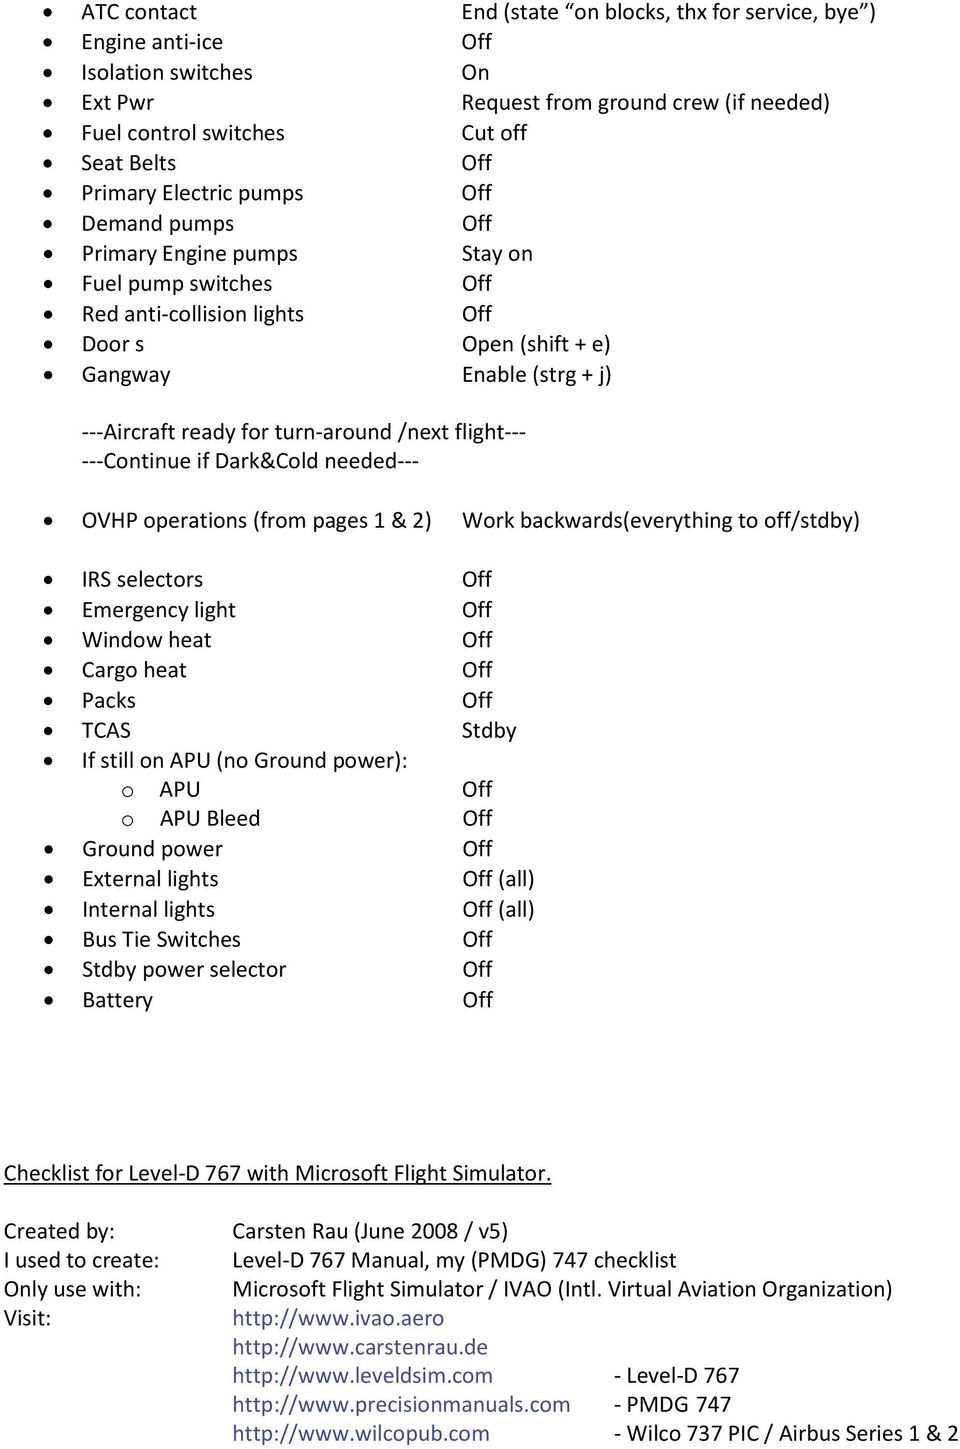 Checklist MS FSX incl  Level-D ER - PDF